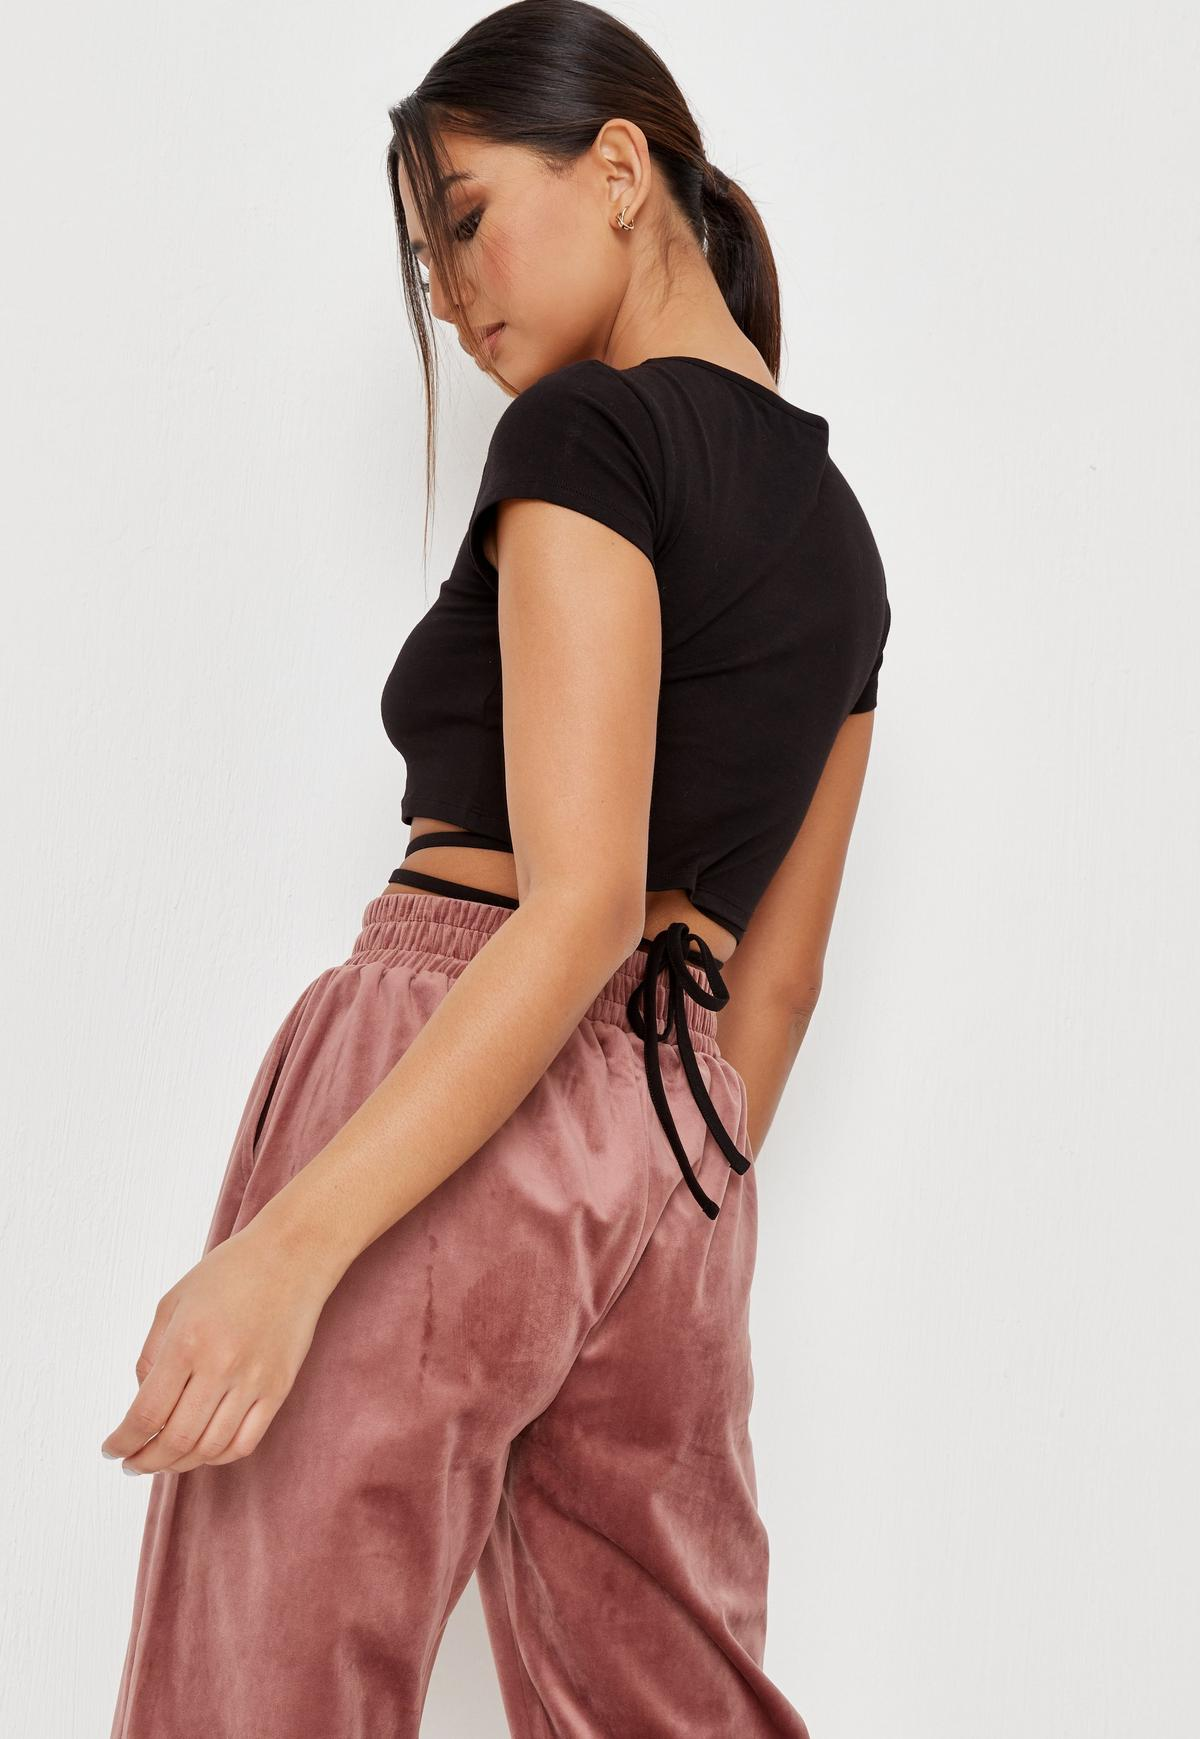 Black Lover Graffiti Graphic Lace Up Crop Top   Missguided